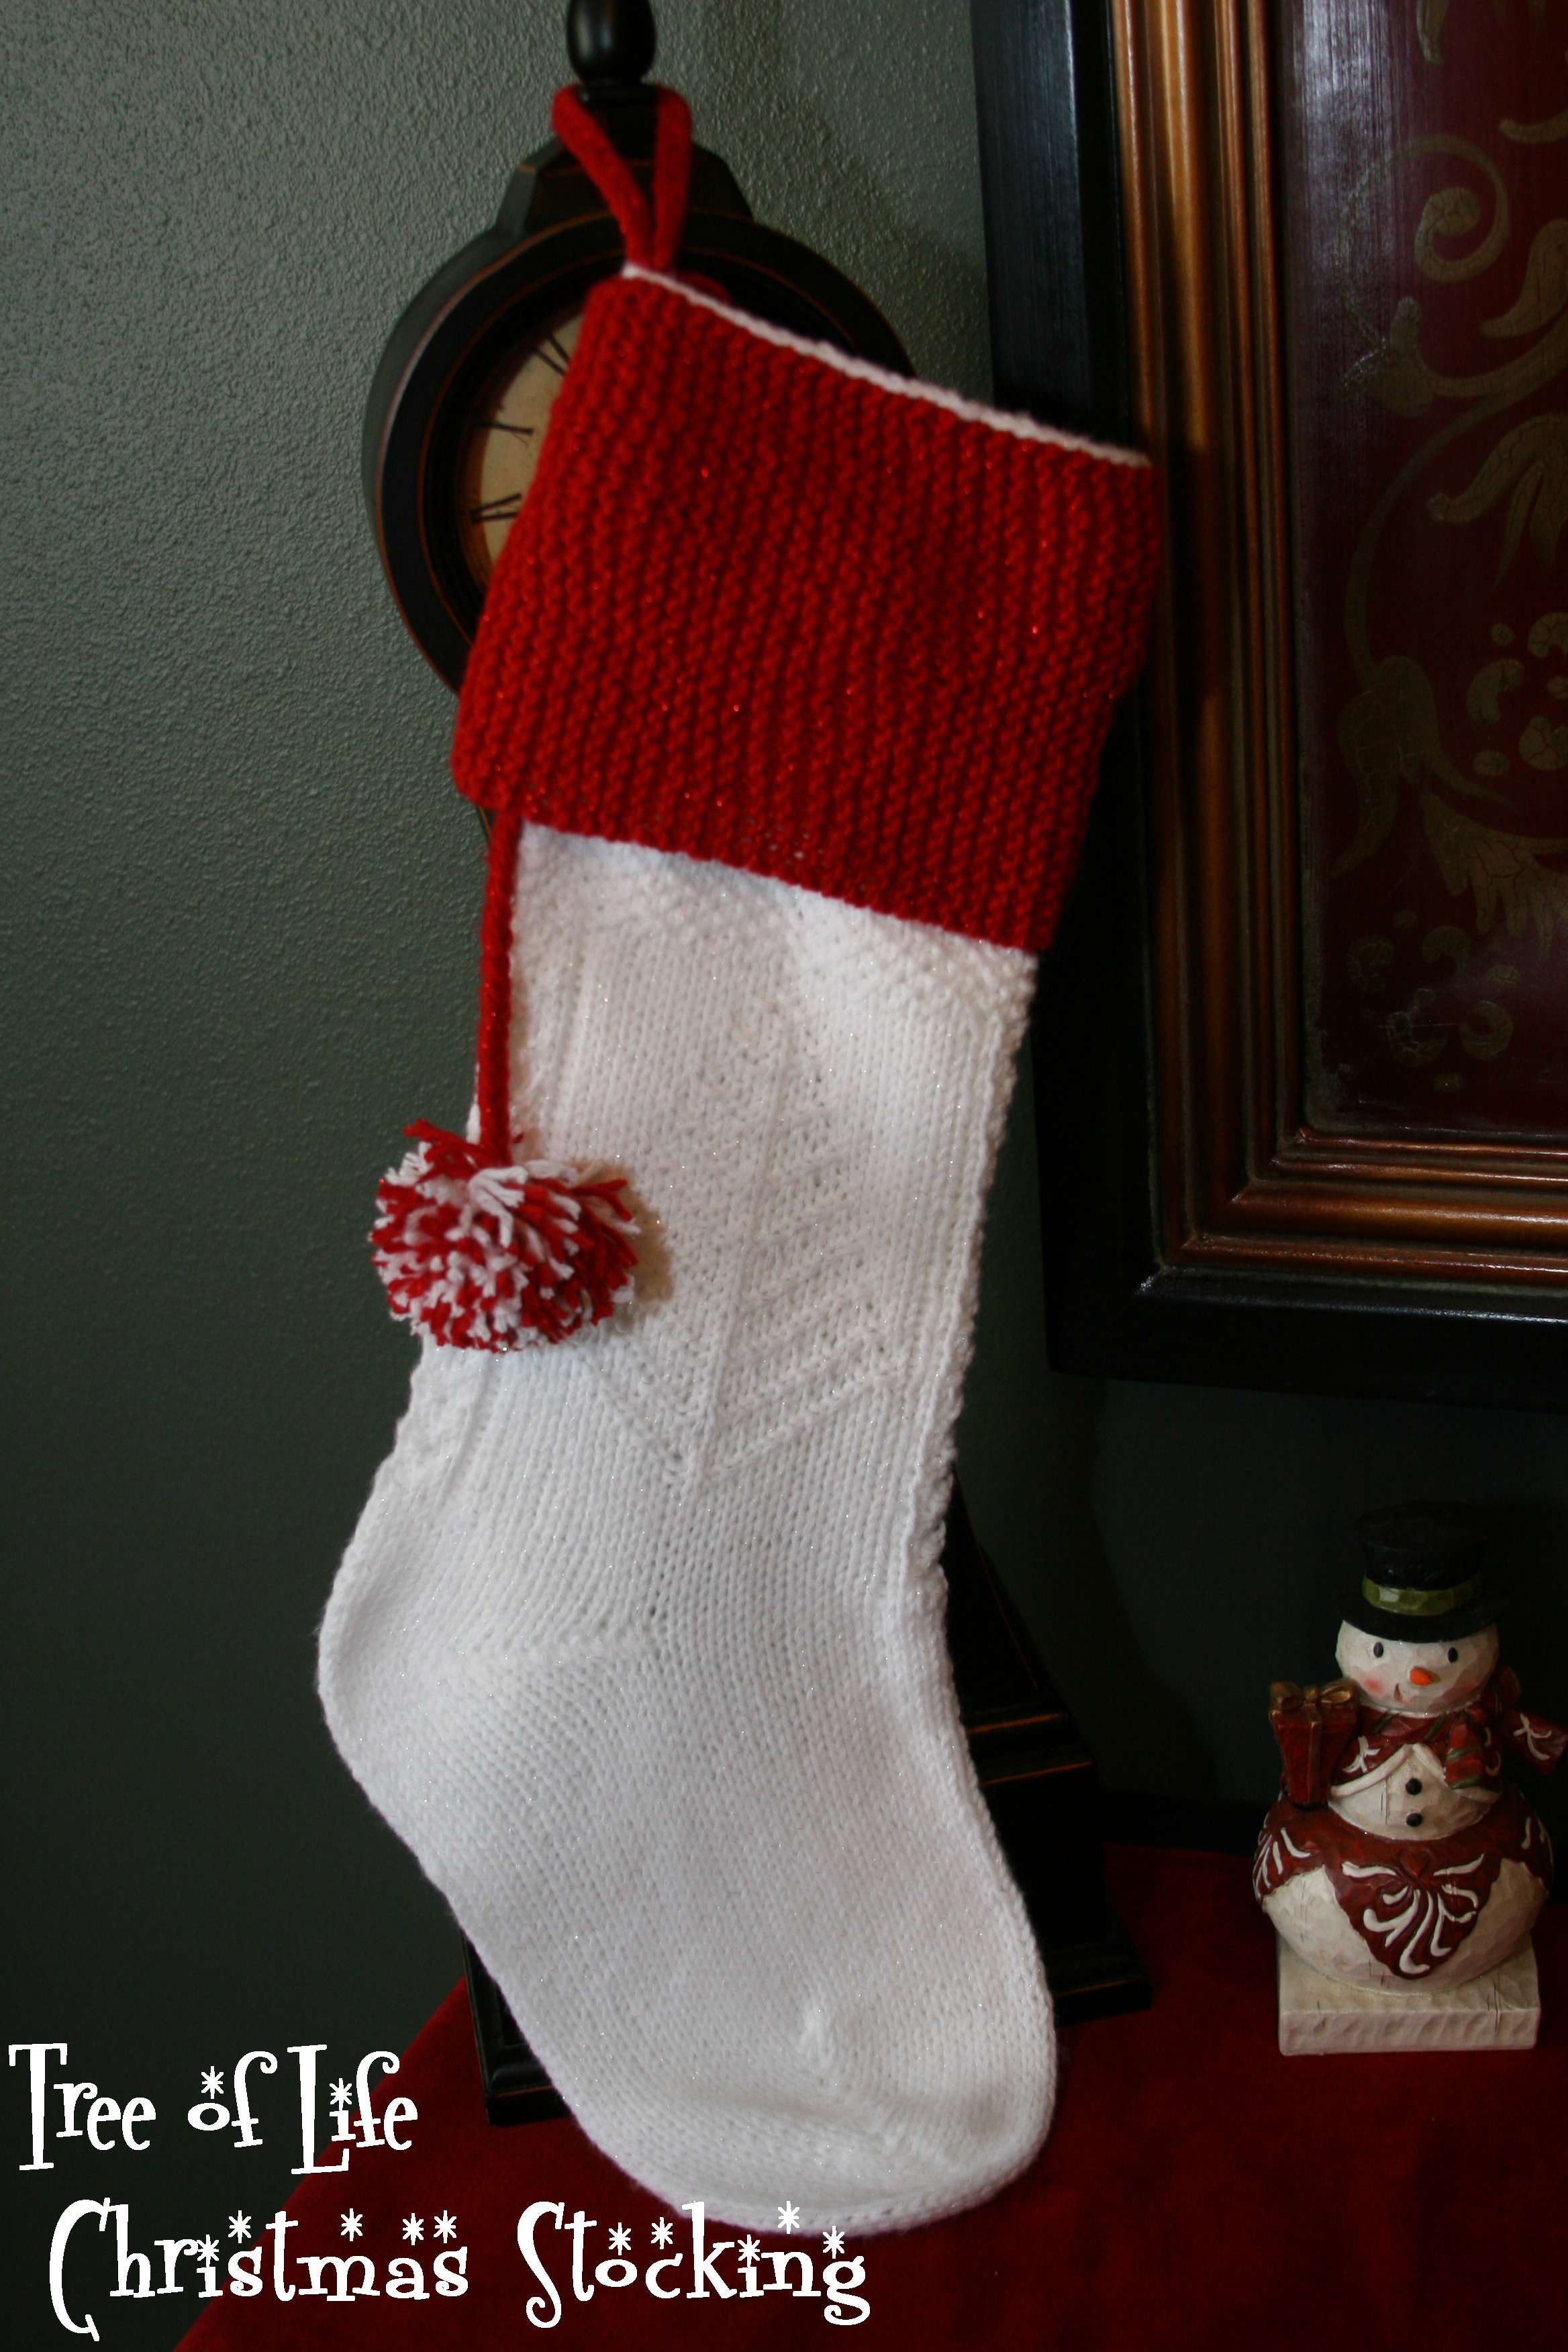 Knitting Pattern For Christmas Stocking Free : Happy Holidays!!! Christmas Stocking Pattern   Knitting Board Blog